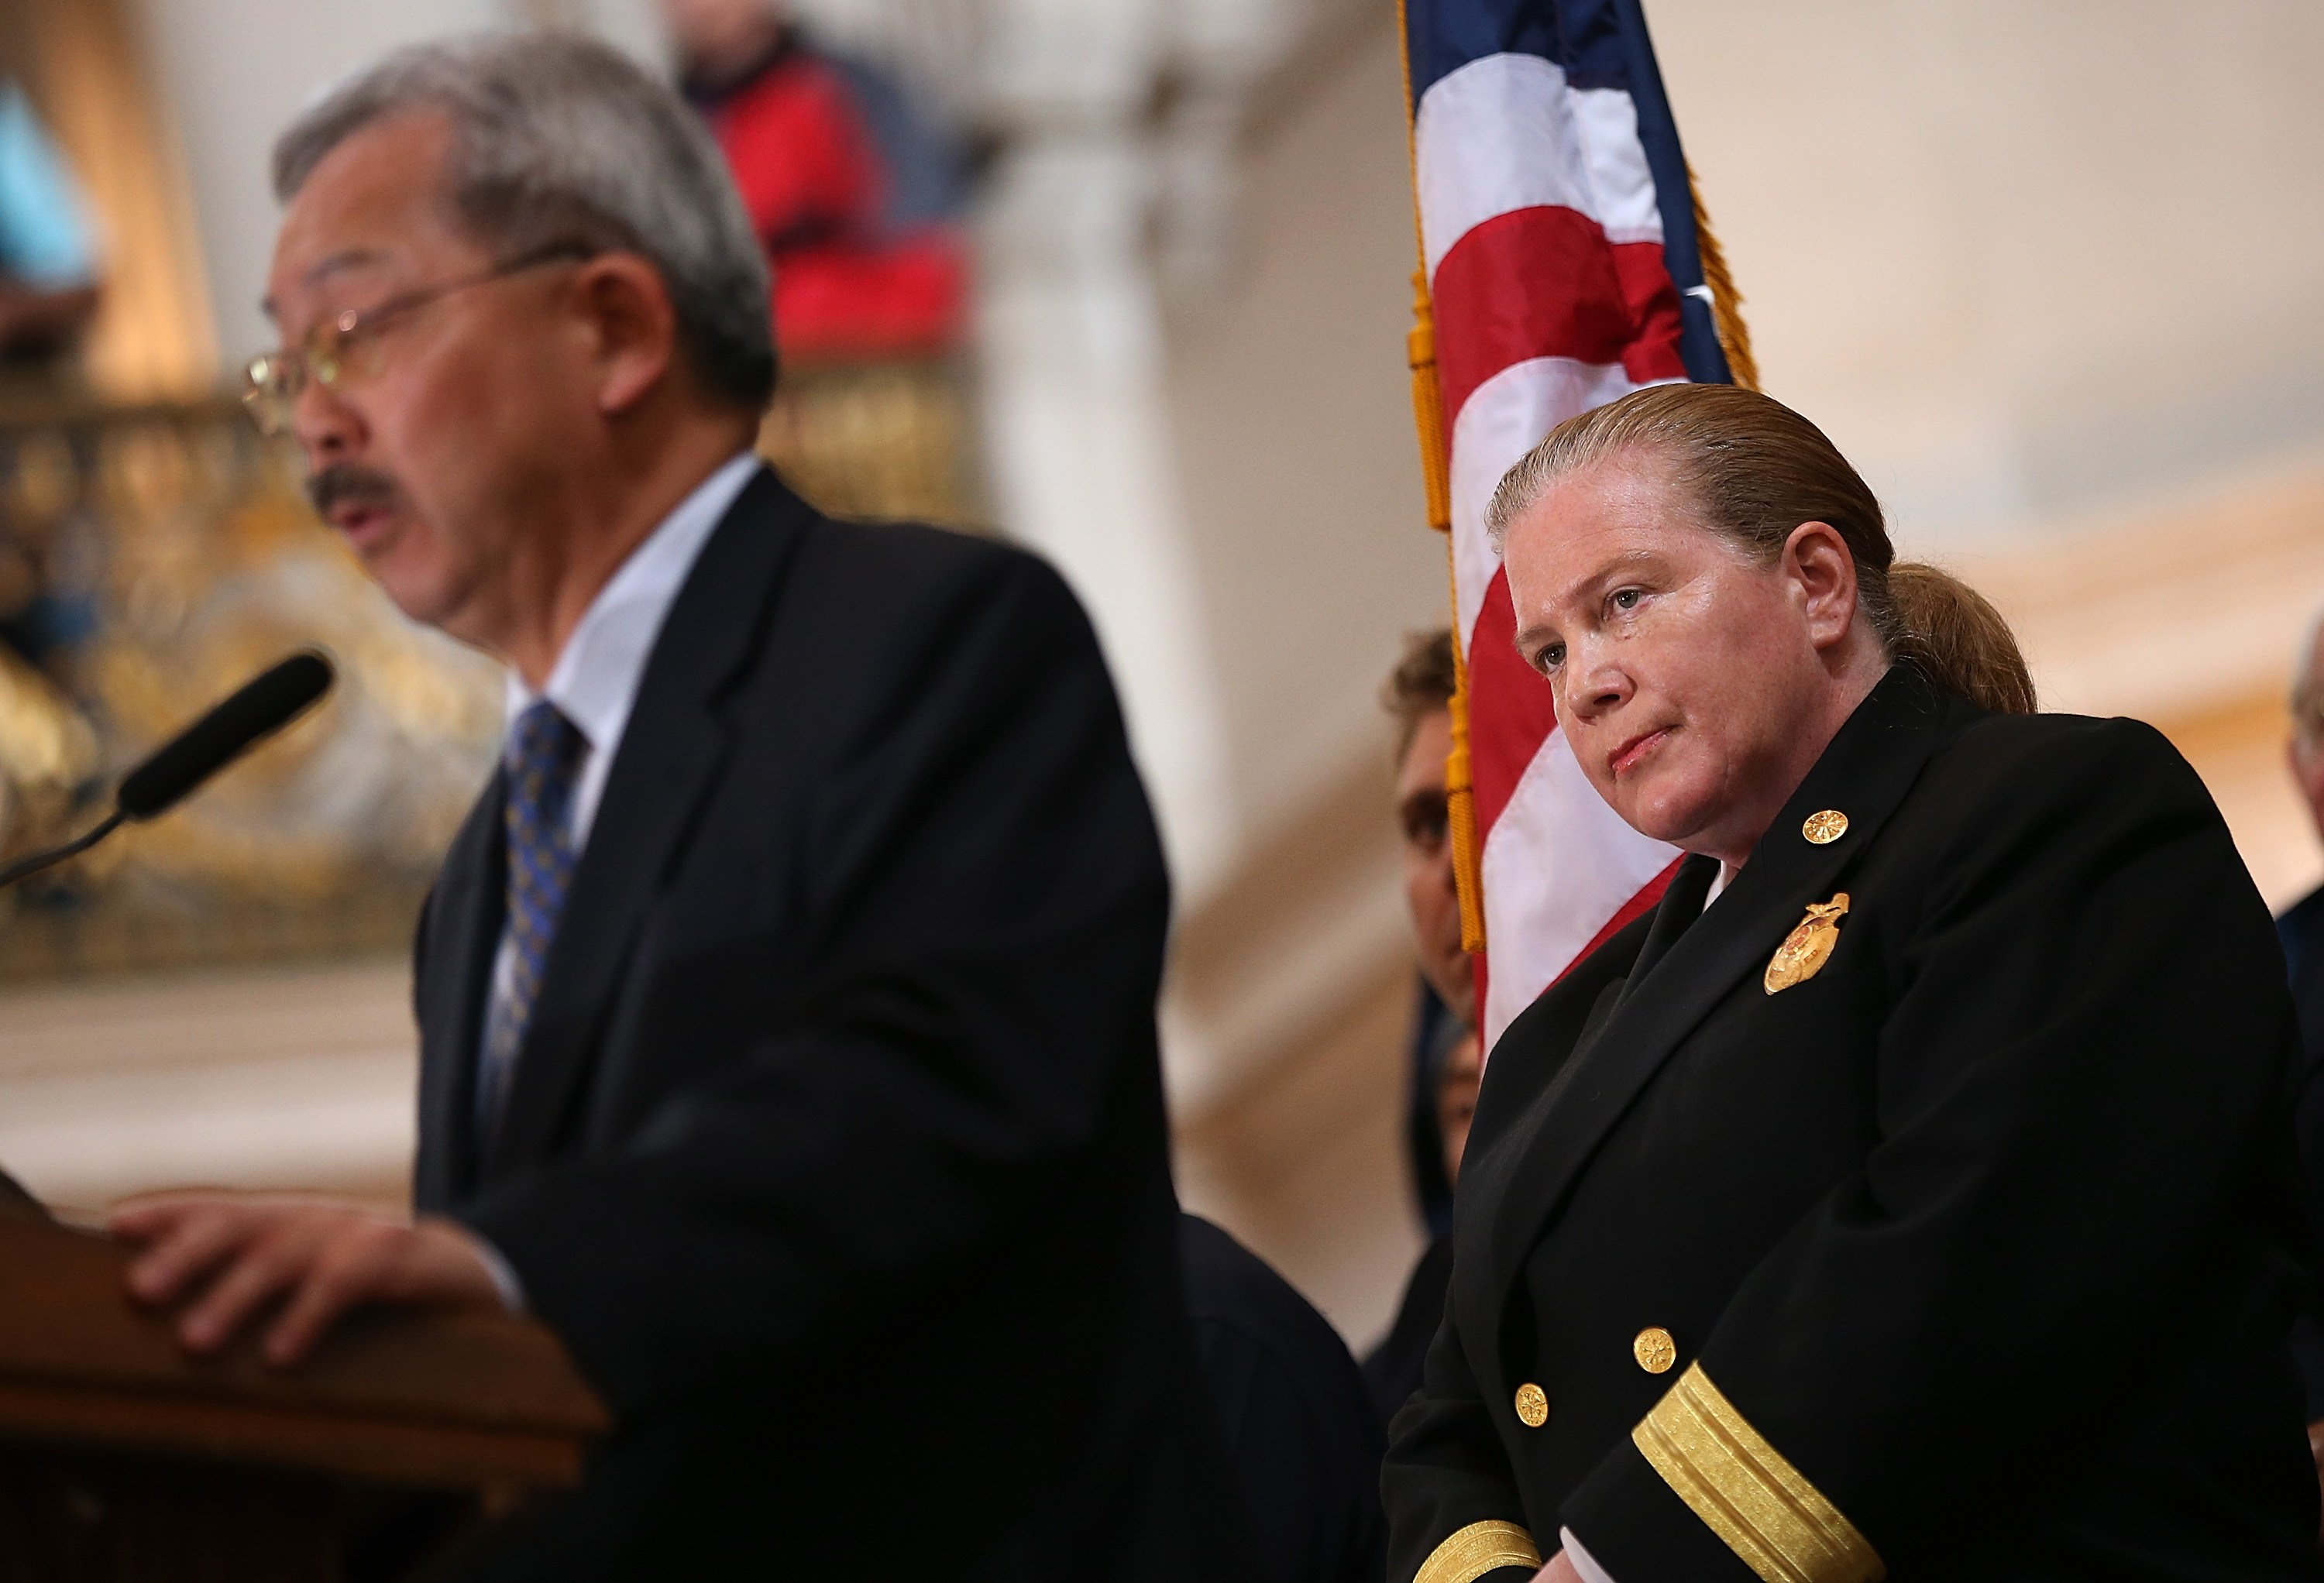 San Francisco Mayor Ed Lee and Fire Chief Joanne Hayes-White in 2014.